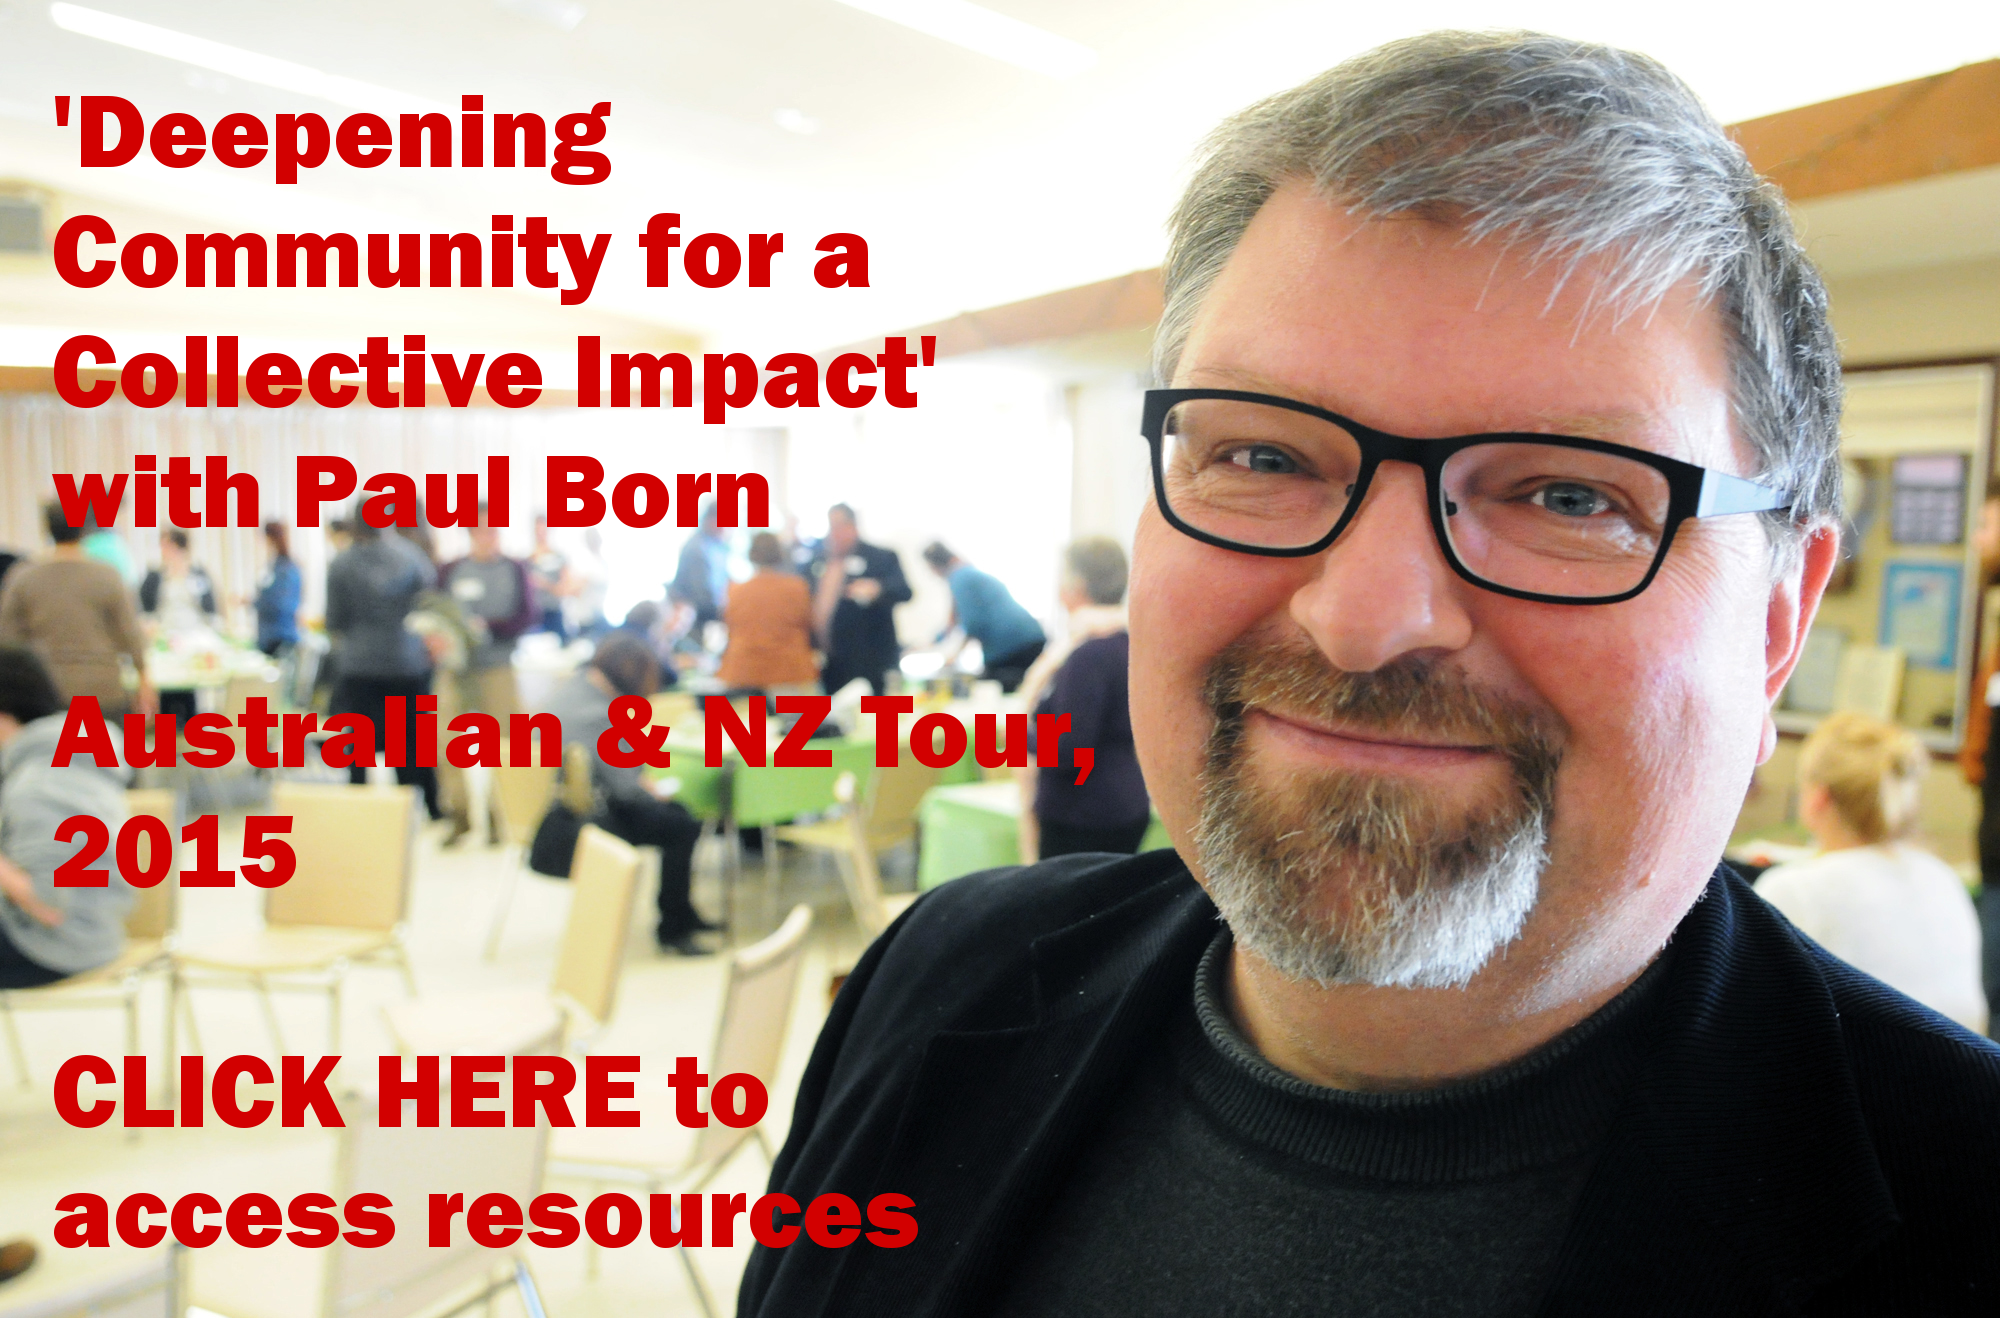 paul born resources page image